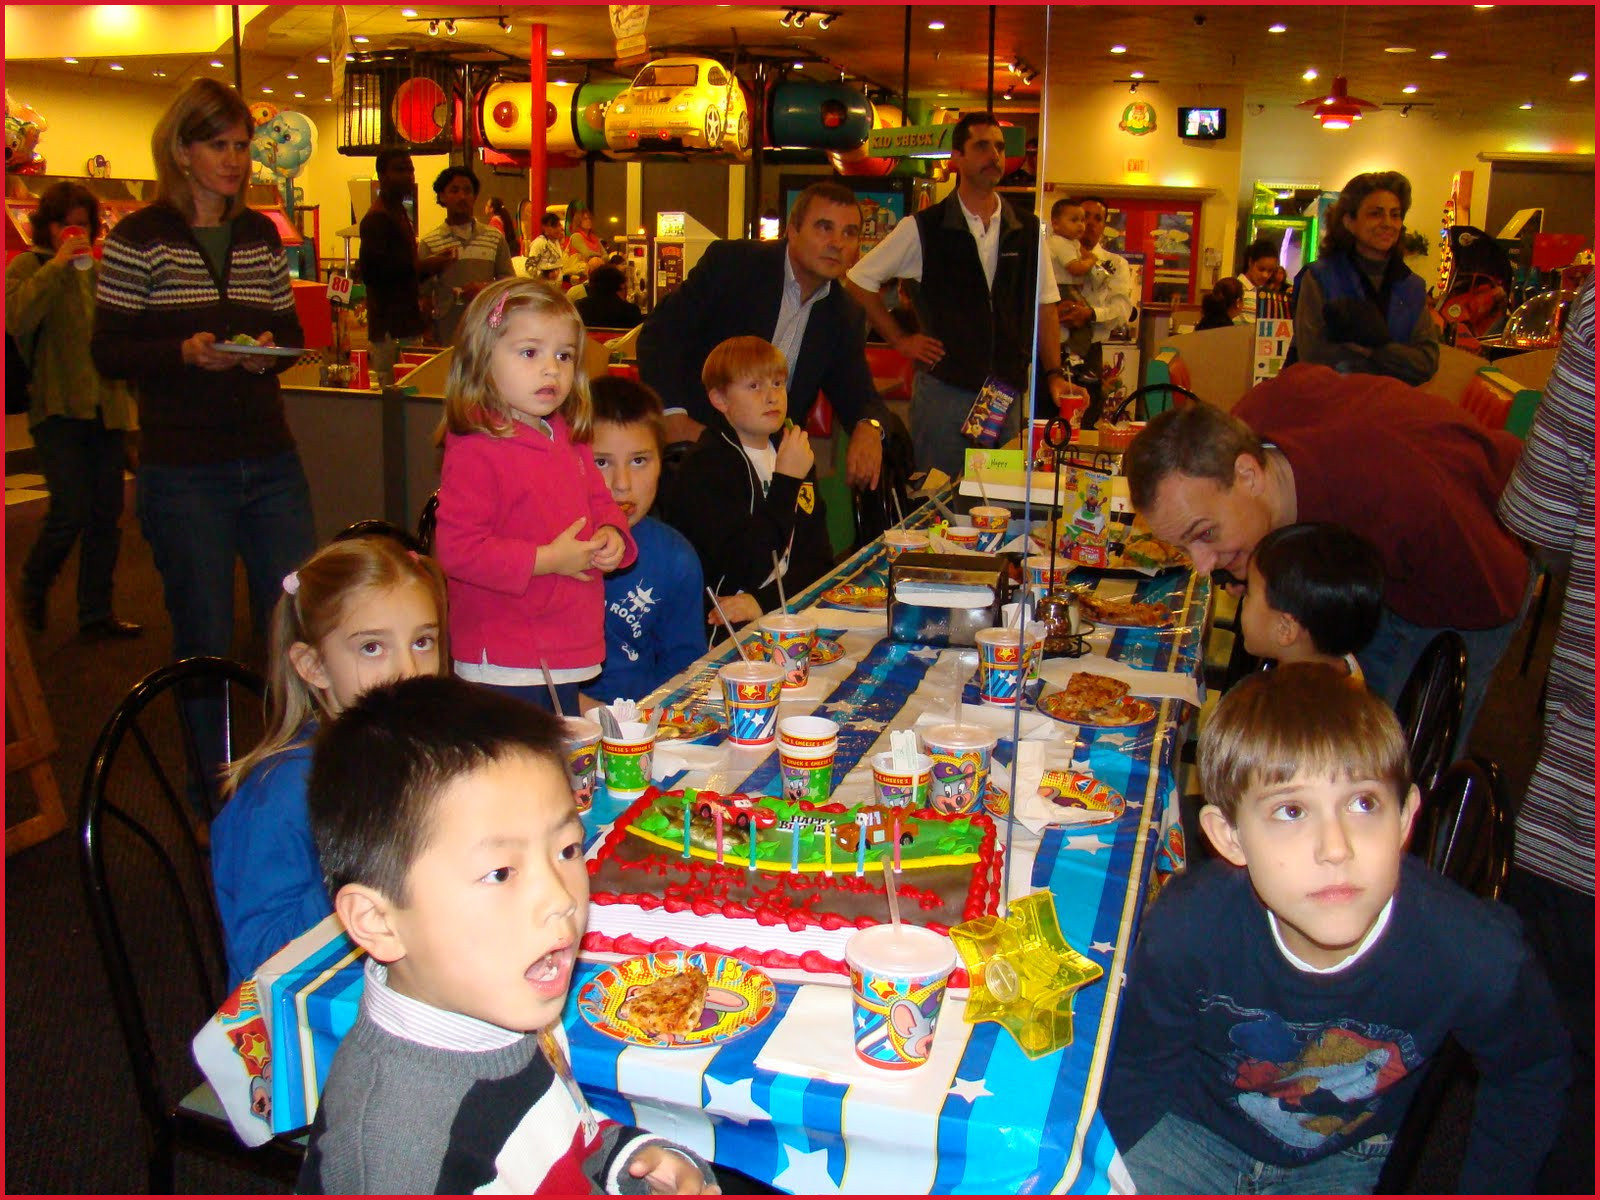 Chuck E Cheese Birthday Party Prices  Beautiful Chuck E Cheese Birthday Party Prices Gallery